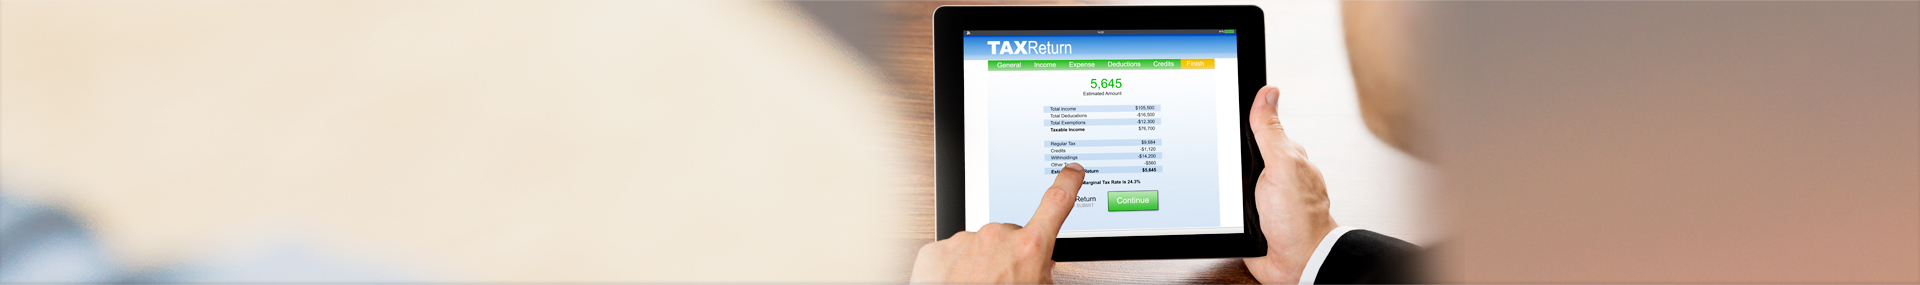 Tax_Payment_Income_Other_Direc_Taxes